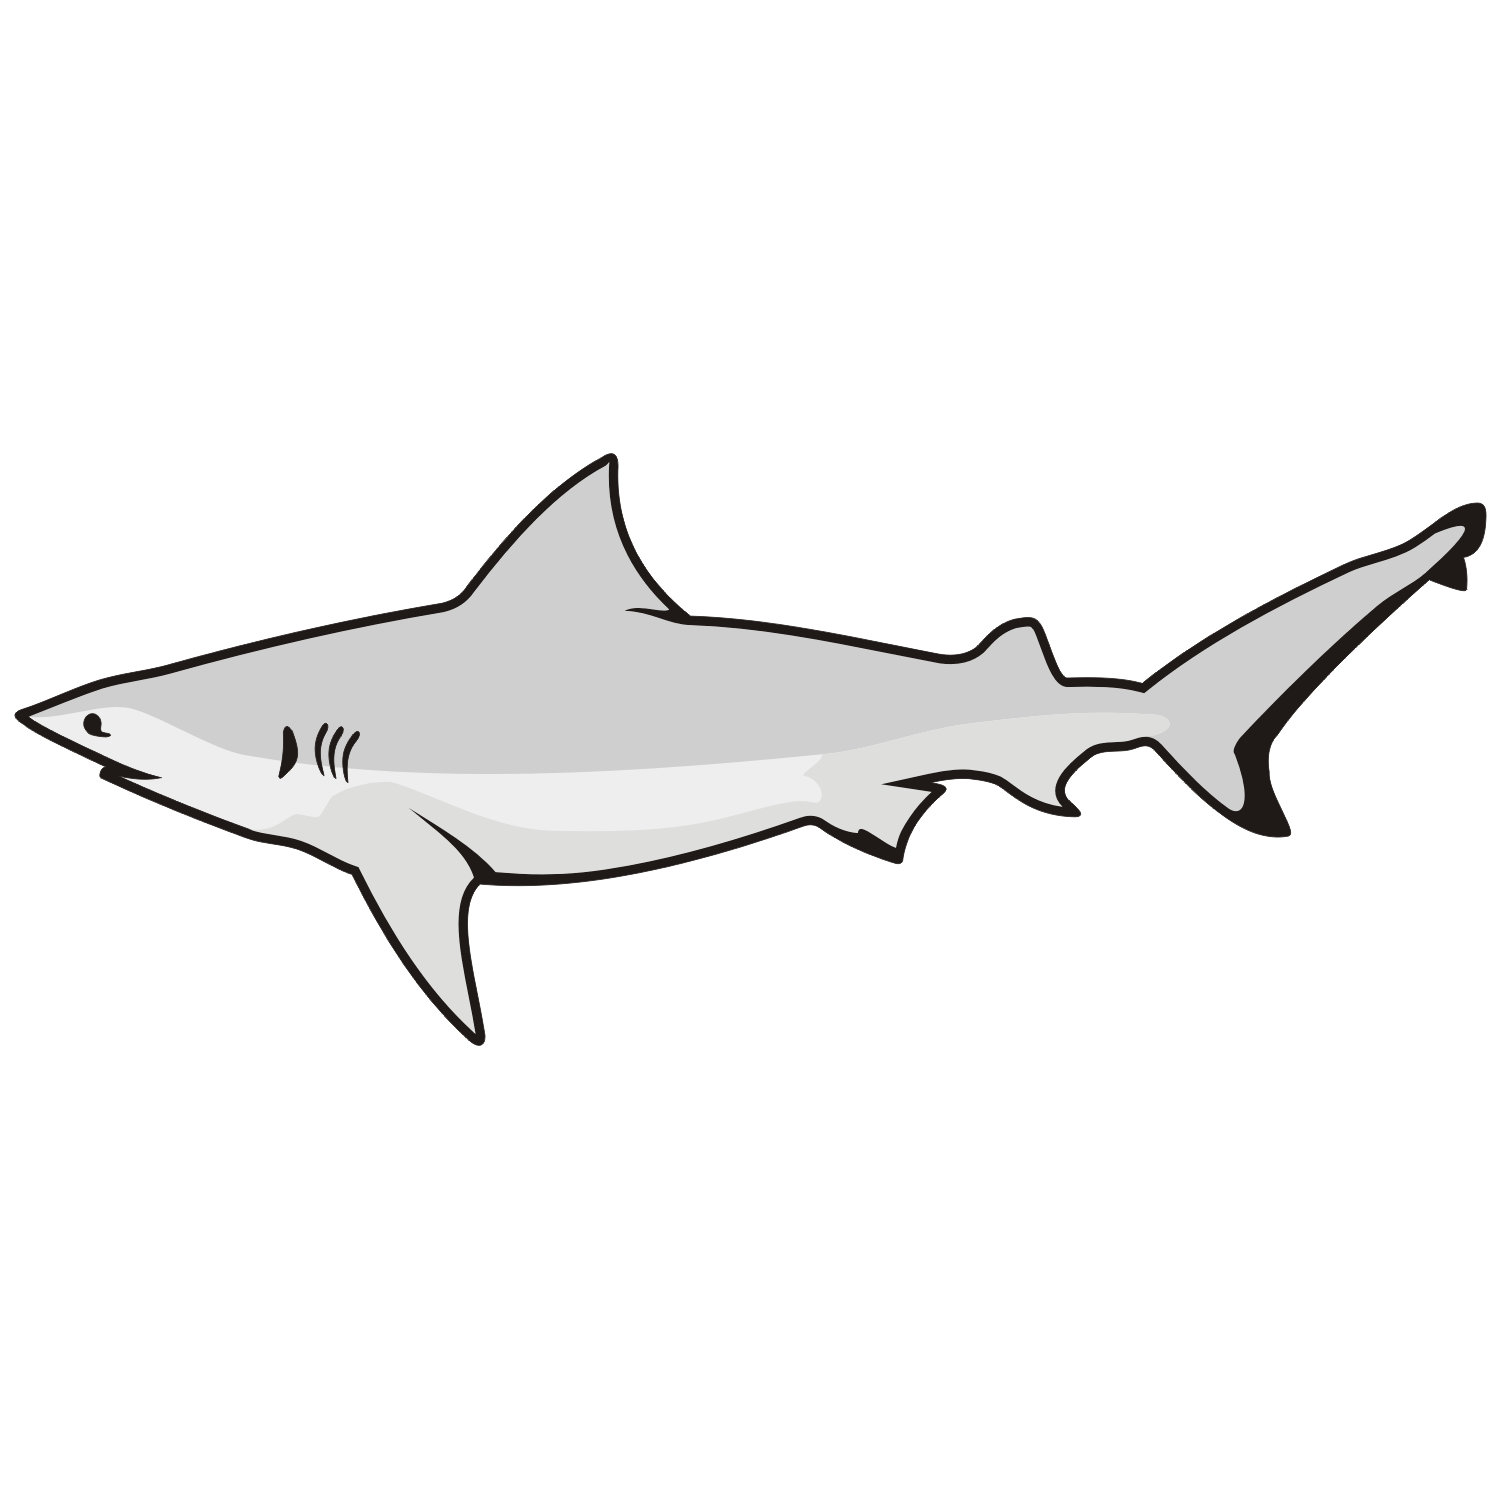 1500x1500 Shark Vector 12 An Images Hub